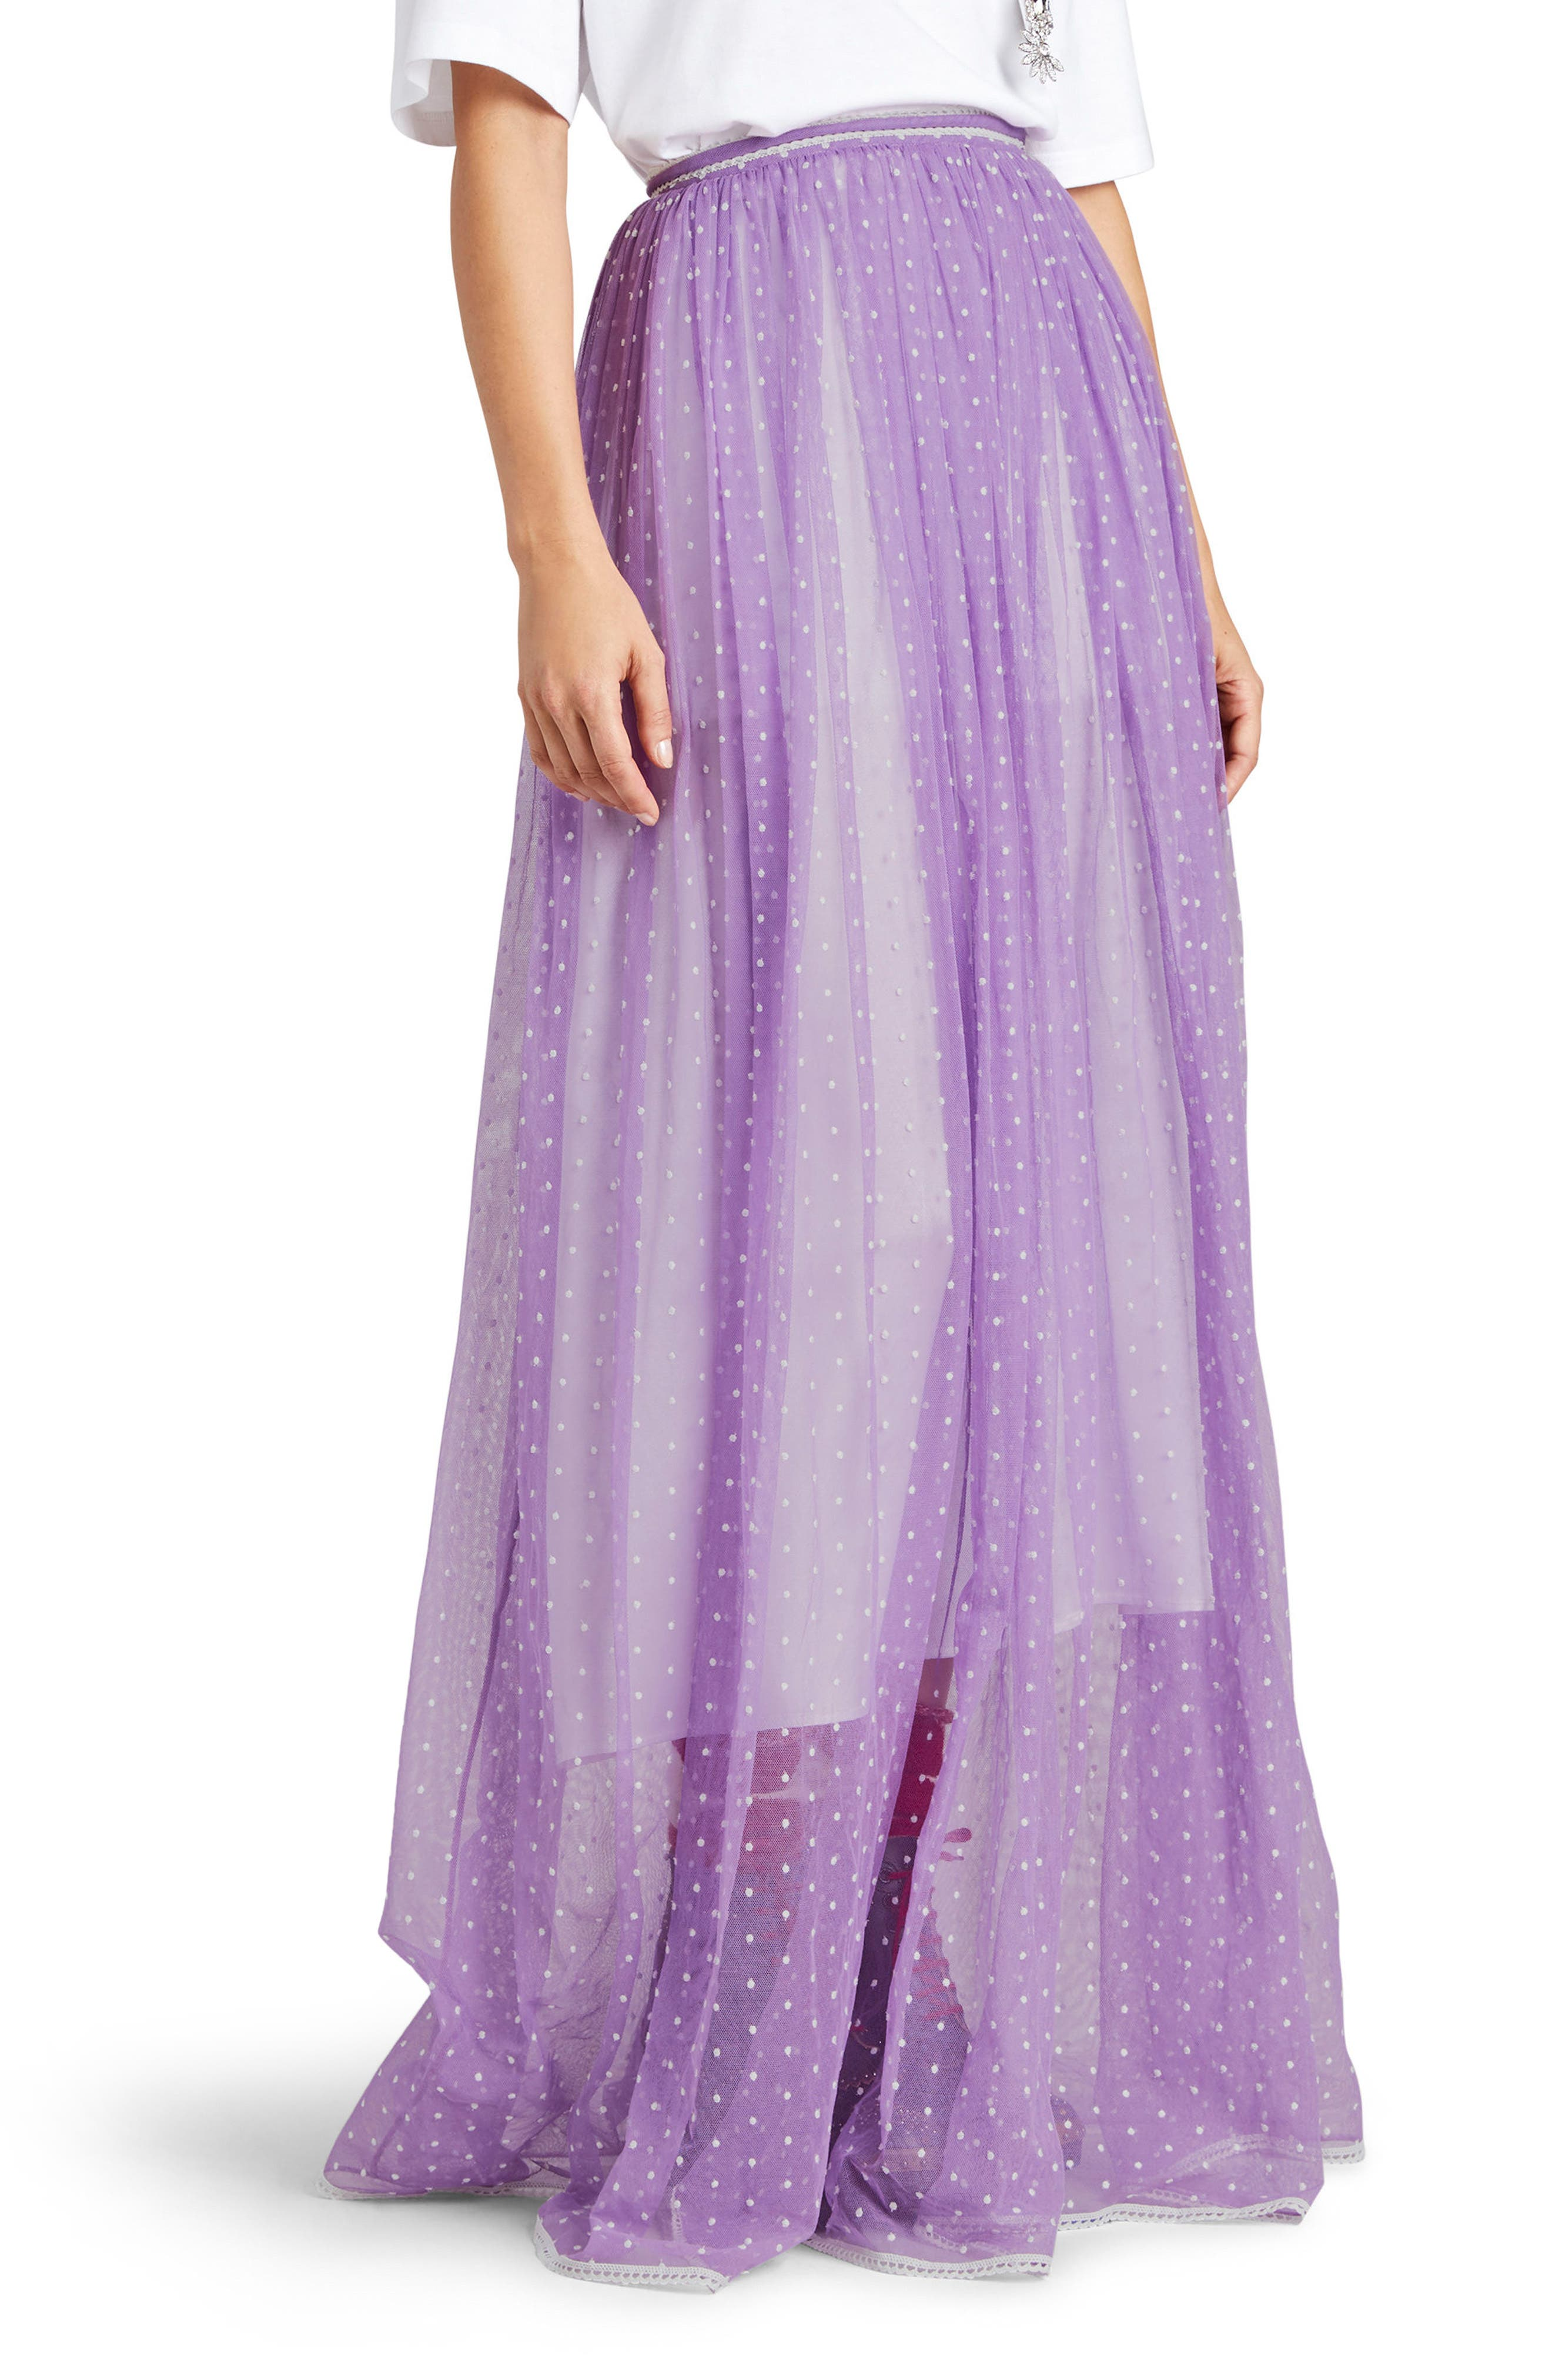 Flocked Tulle Maxi Skirt,                             Main thumbnail 1, color,                             520